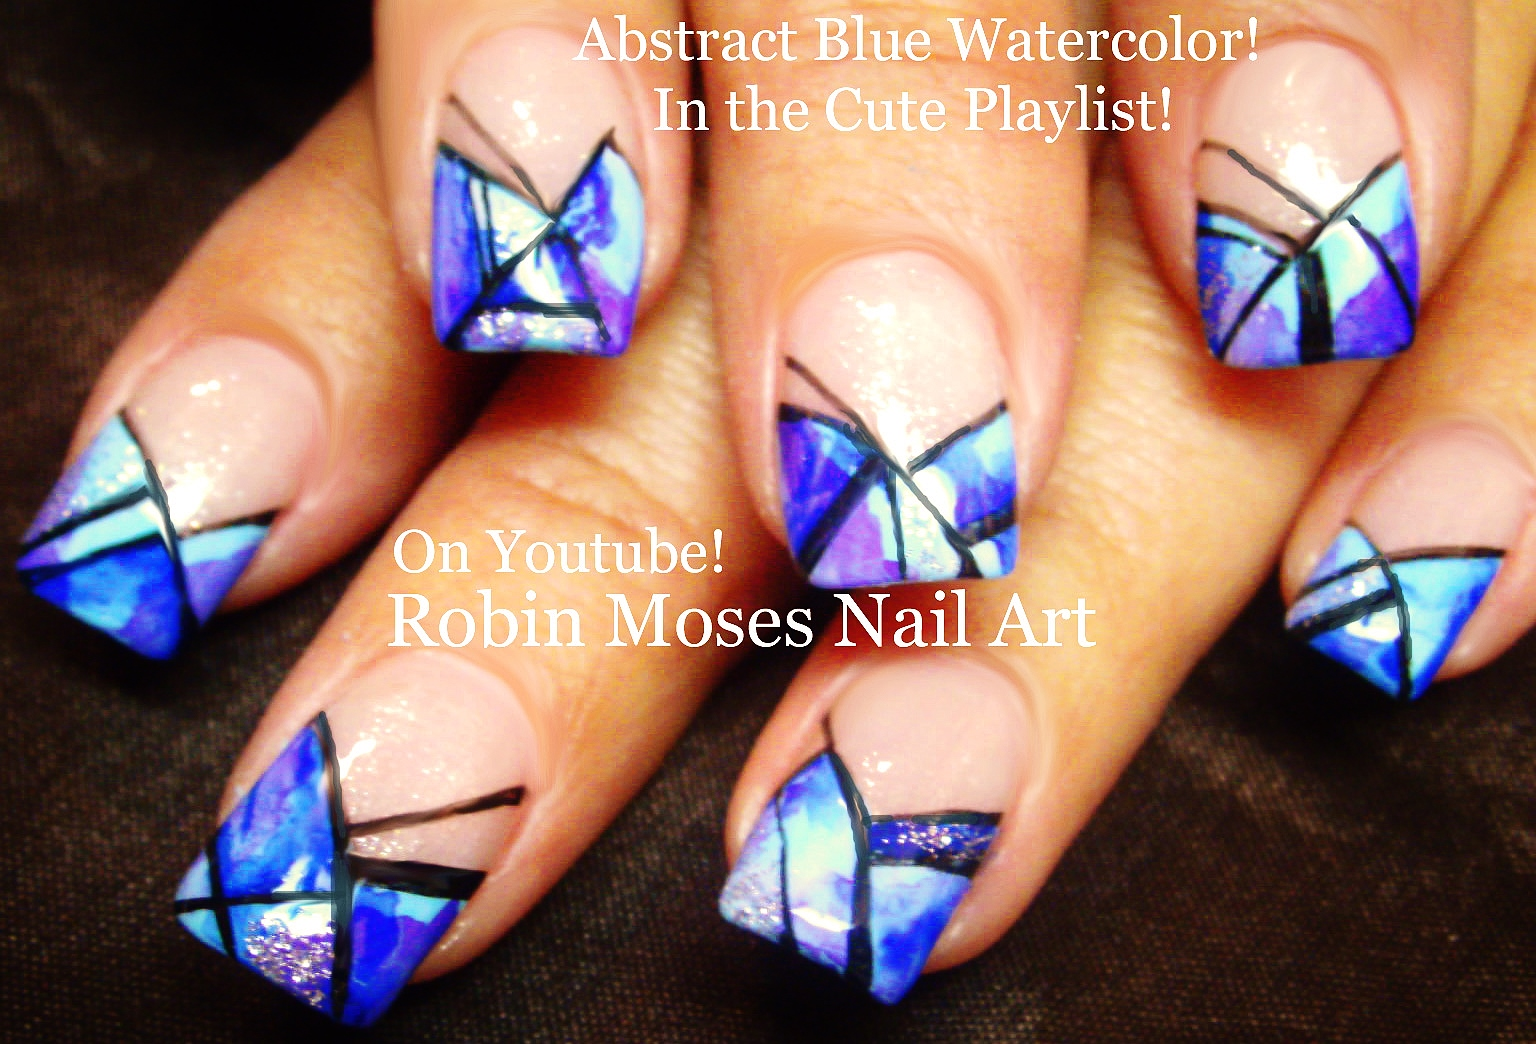 Robin Moses Nail Art Abstract Watercolor Nails Abstract Nail within Abstract Nail Art Design 2015